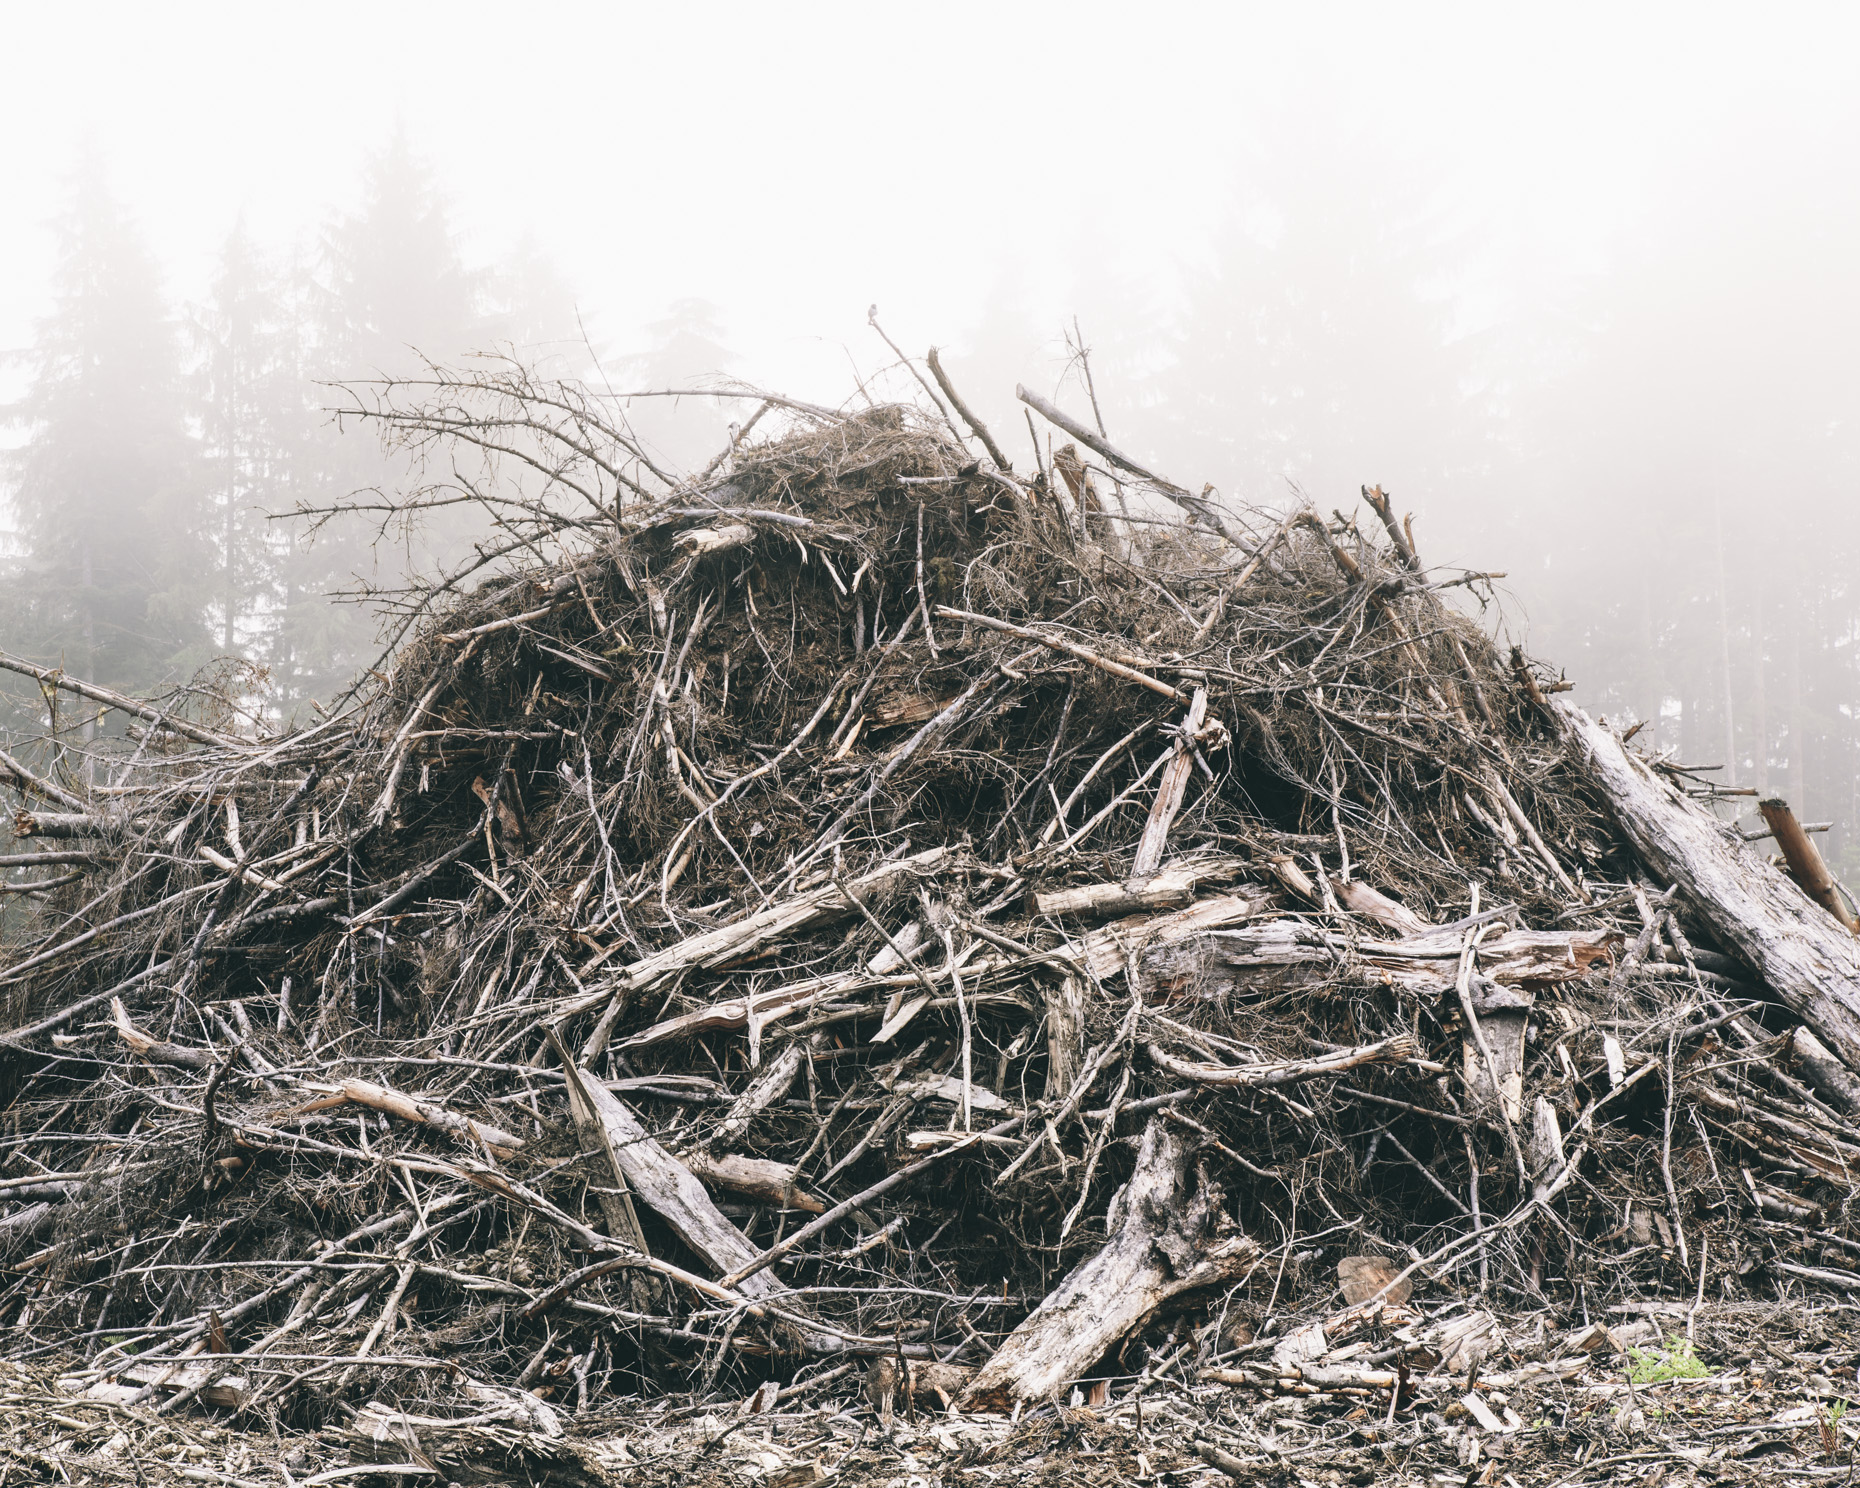 Debris pile from clearcut, Olympic Peninsula, WA - Paul Edmondson